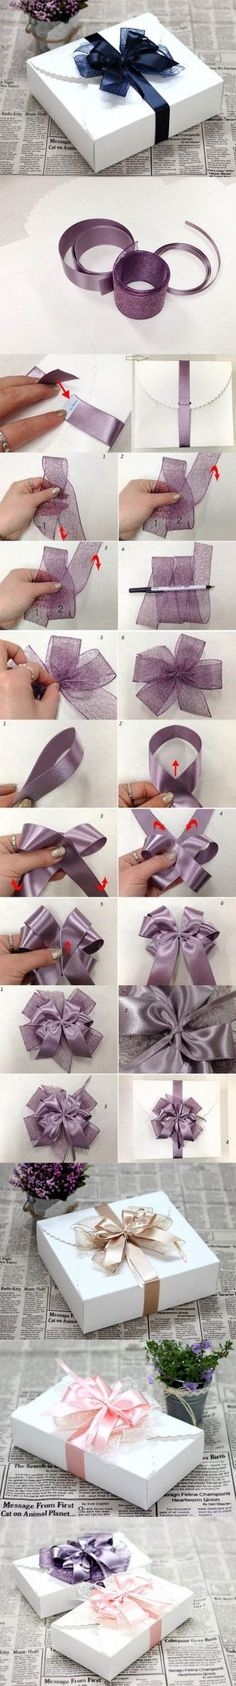 DIY Ribbon Bow for Gift Box Packaging 2